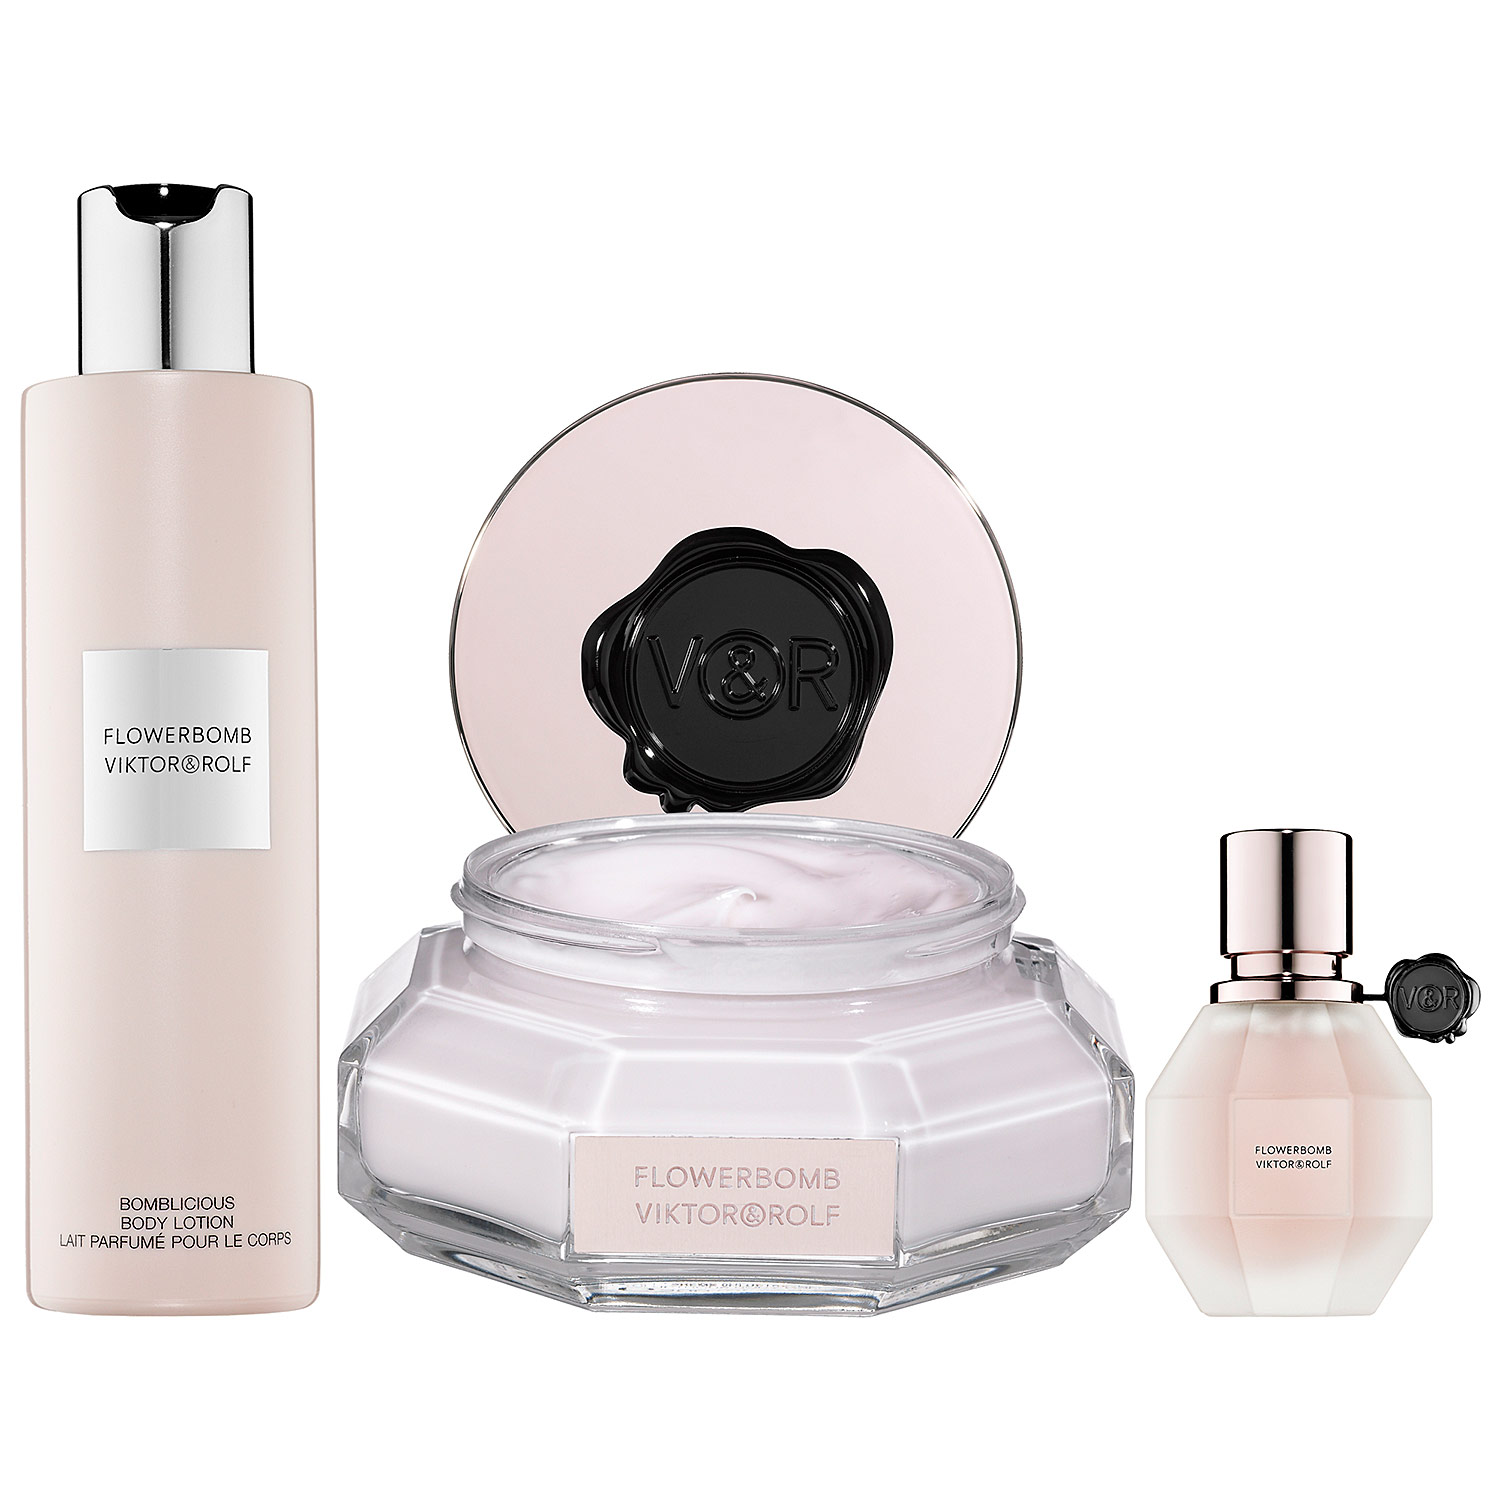 Flowerbomb Bath and Body Collection